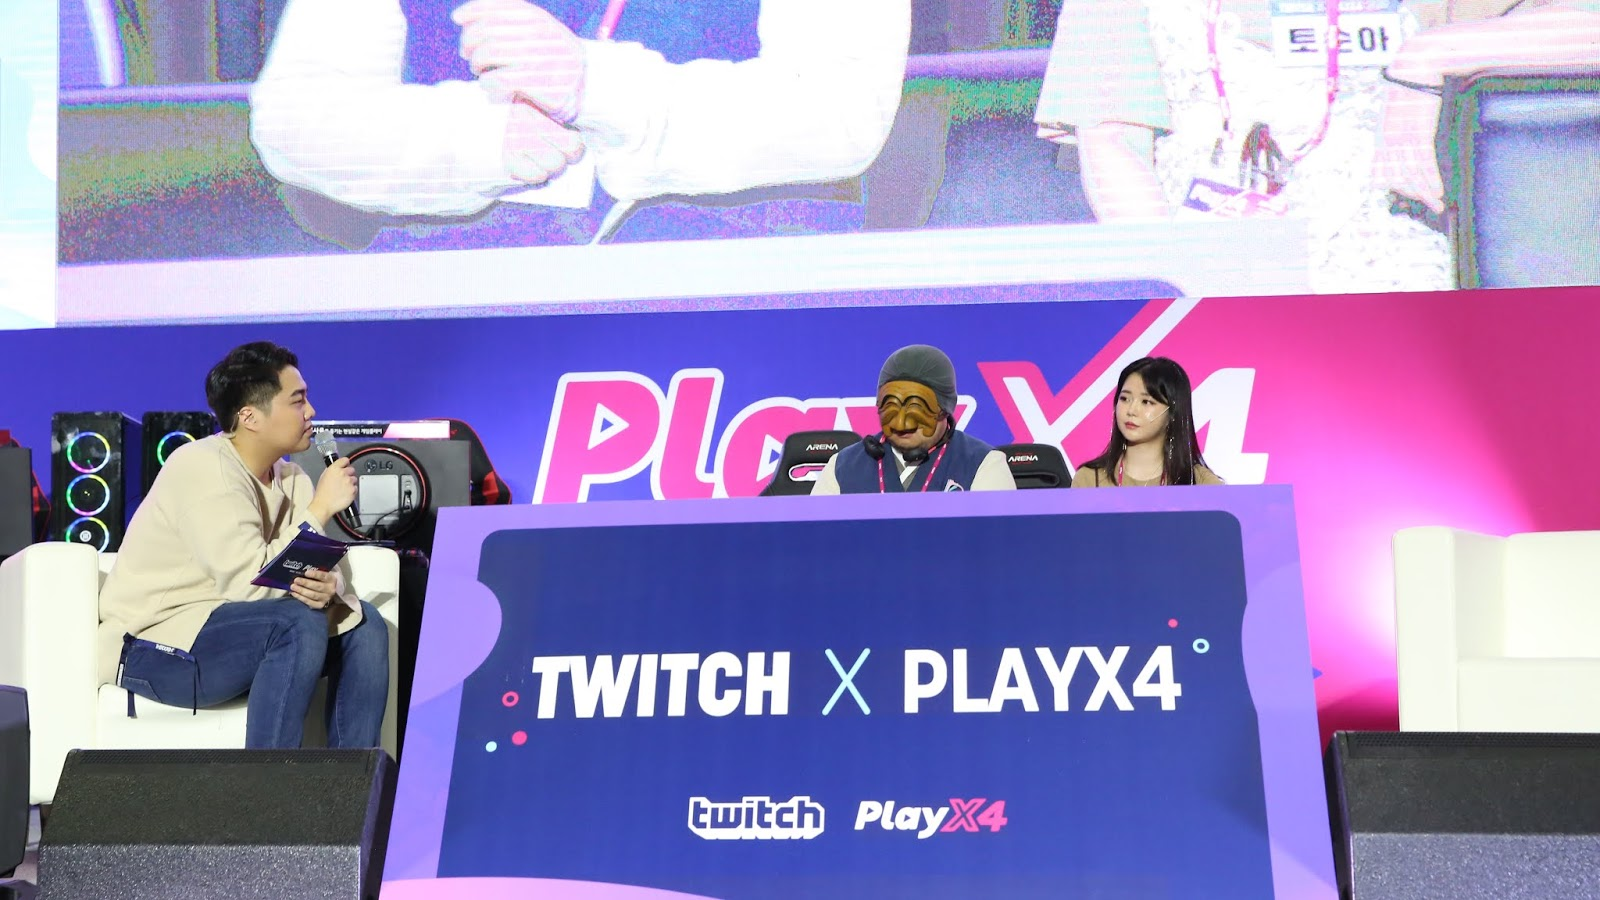 playX4 connects game lovers with global media